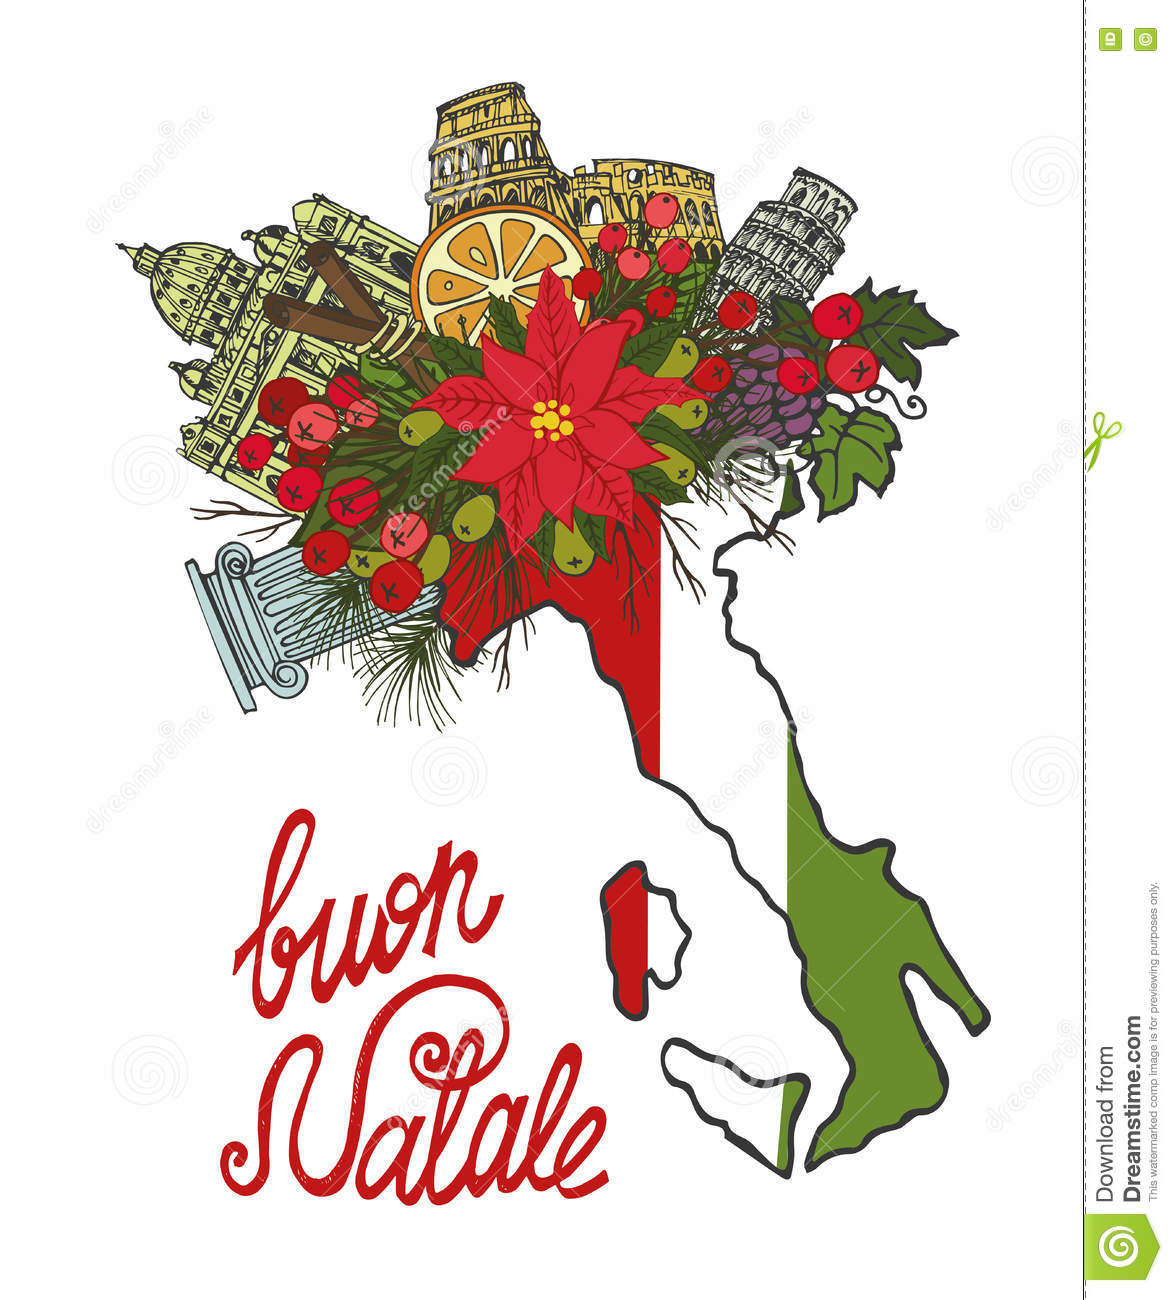 Italy christmas cardhand drawn doodle map stock vector download italy christmas cardhand drawn doodle map stock vector illustration of italian m4hsunfo